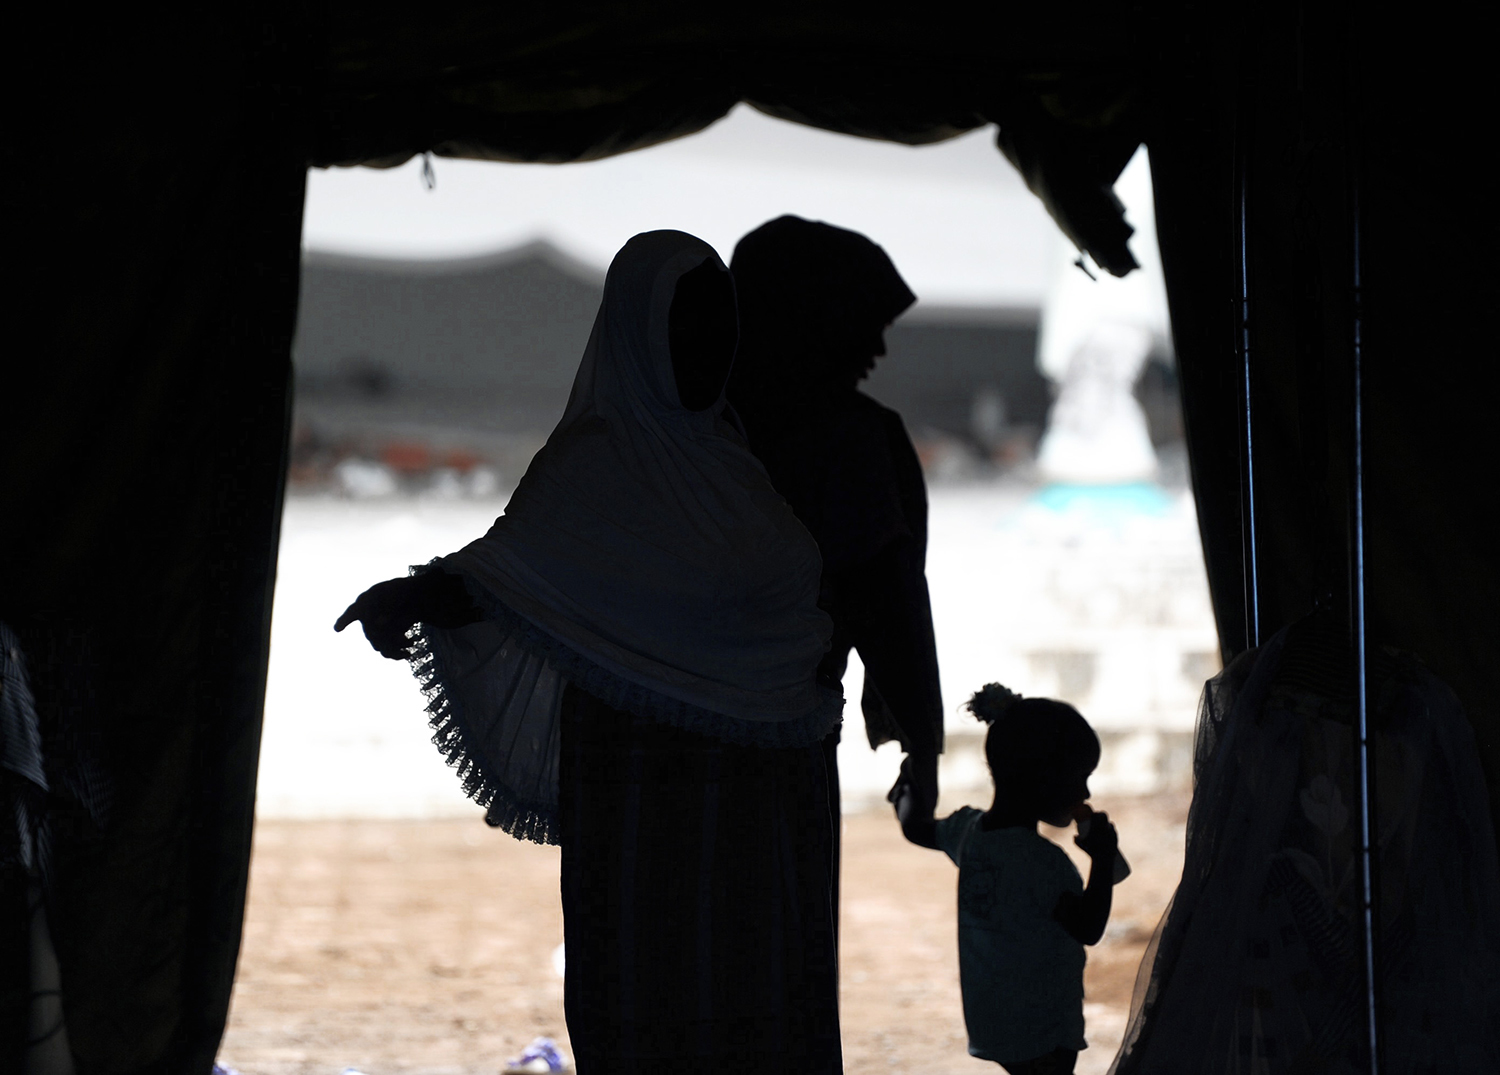 TOPSHOT - A family, survivors of the magnitude 6.4 earthquake, walk through the entrance of refugee's tent in Pidie Jaya, Aceh province, on December 9, 2016. Every house in the village was flattened when a 6.5-magnitude quake tore through Aceh province in Indonesia's west, killing more than 100 people. / AFP PHOTO / CHAIDEER MAHYUDDIN / TT / kod 444